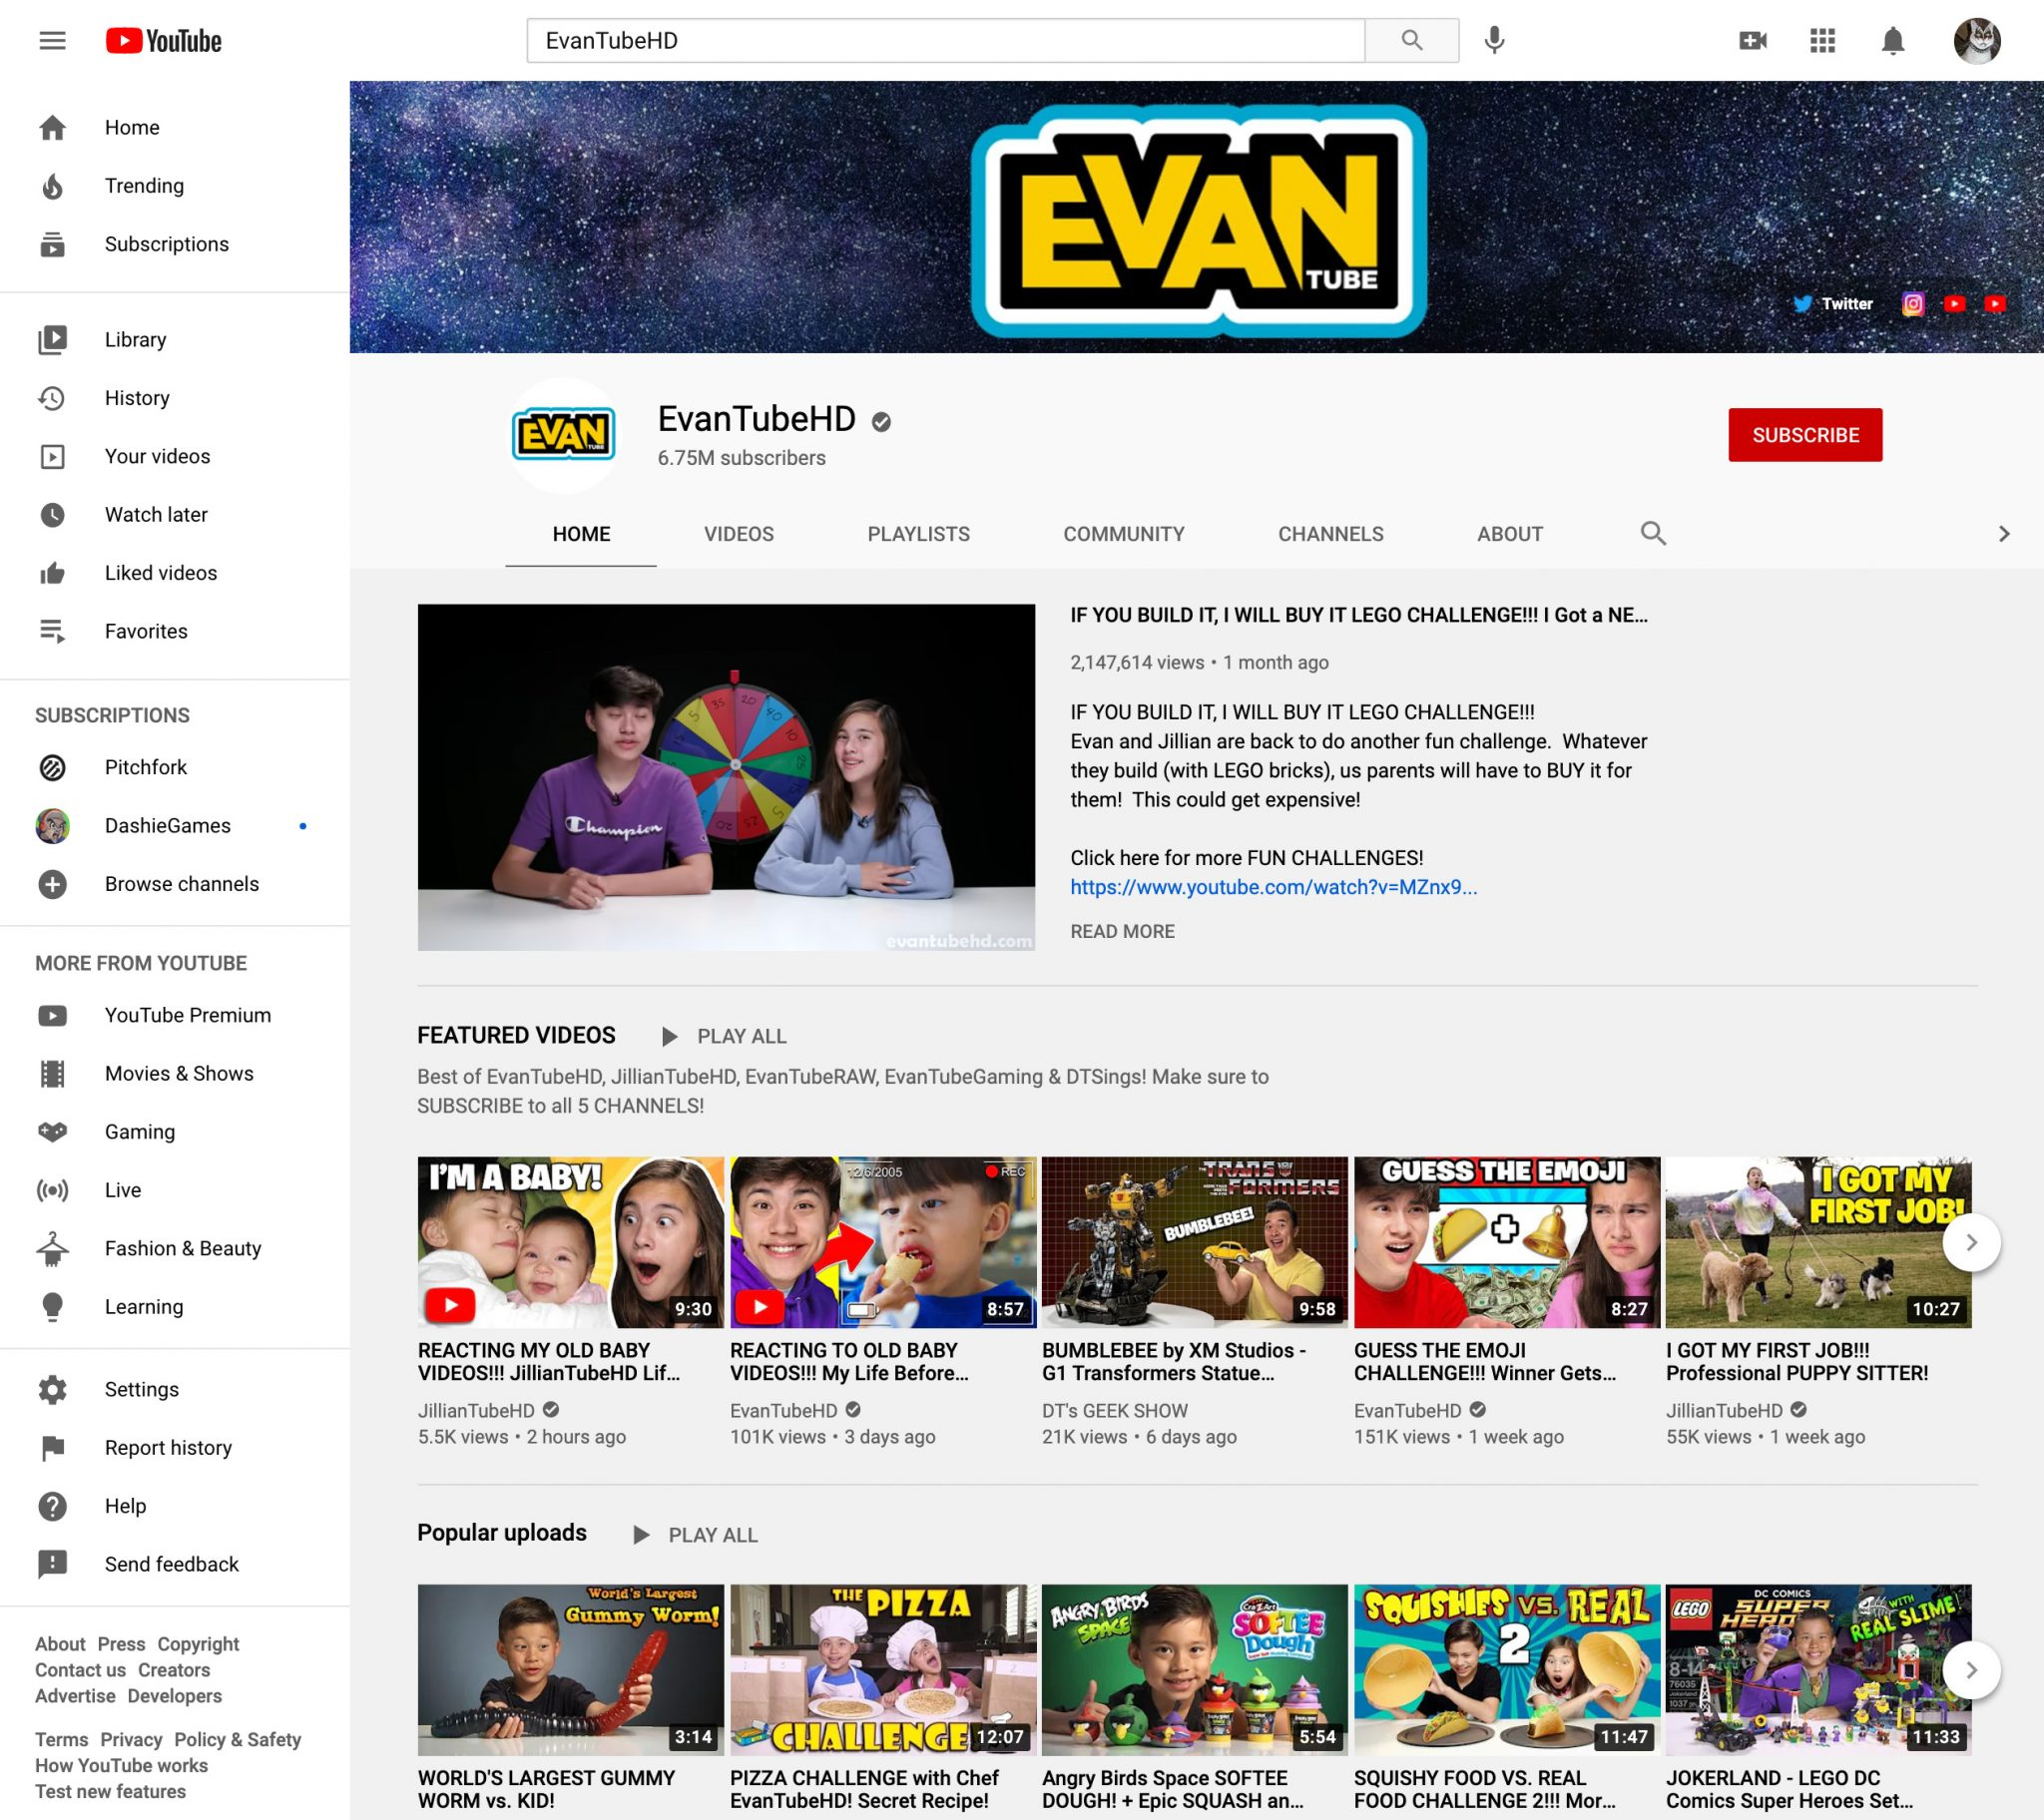 EvanTubeHD youtube influencer page